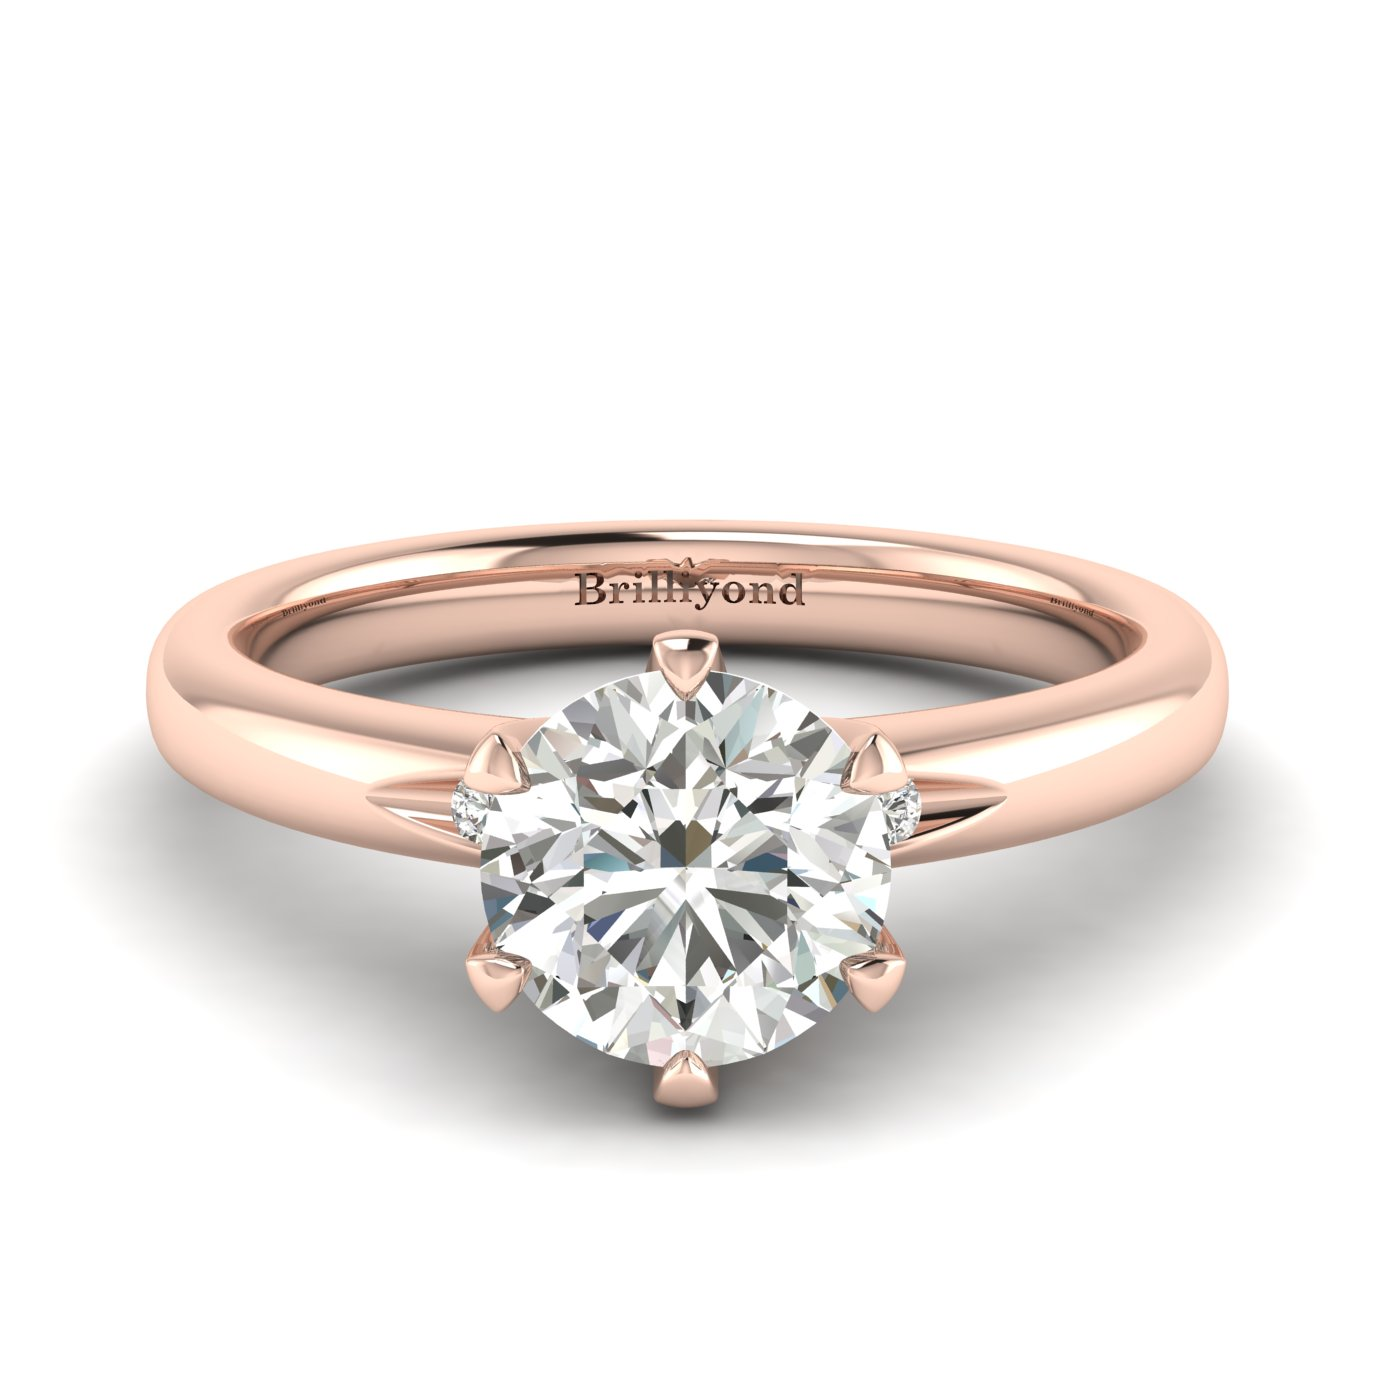 ceylon sapphire solitaire engagement ring set in rose gold. Black Bedroom Furniture Sets. Home Design Ideas